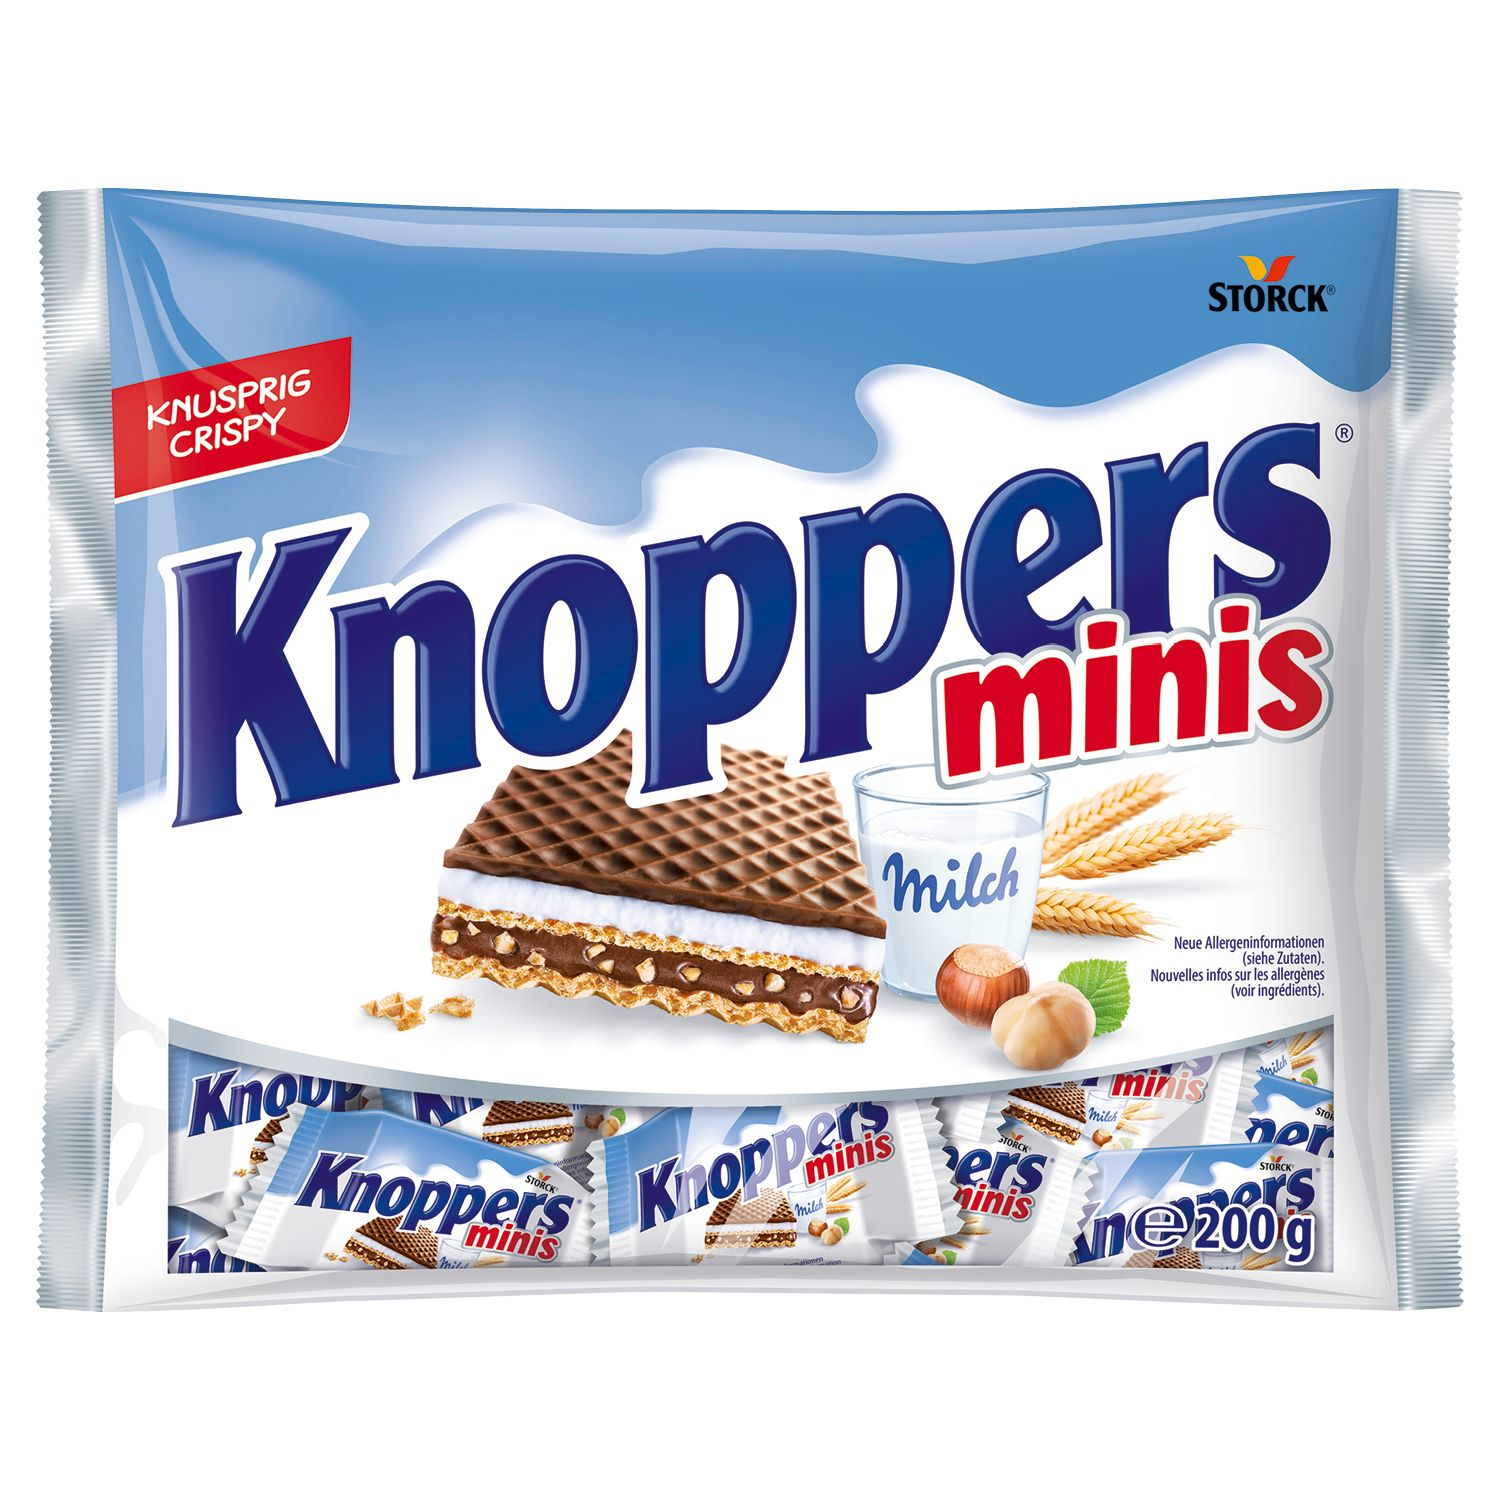 STORCK® Knoppers® Minis 200g*